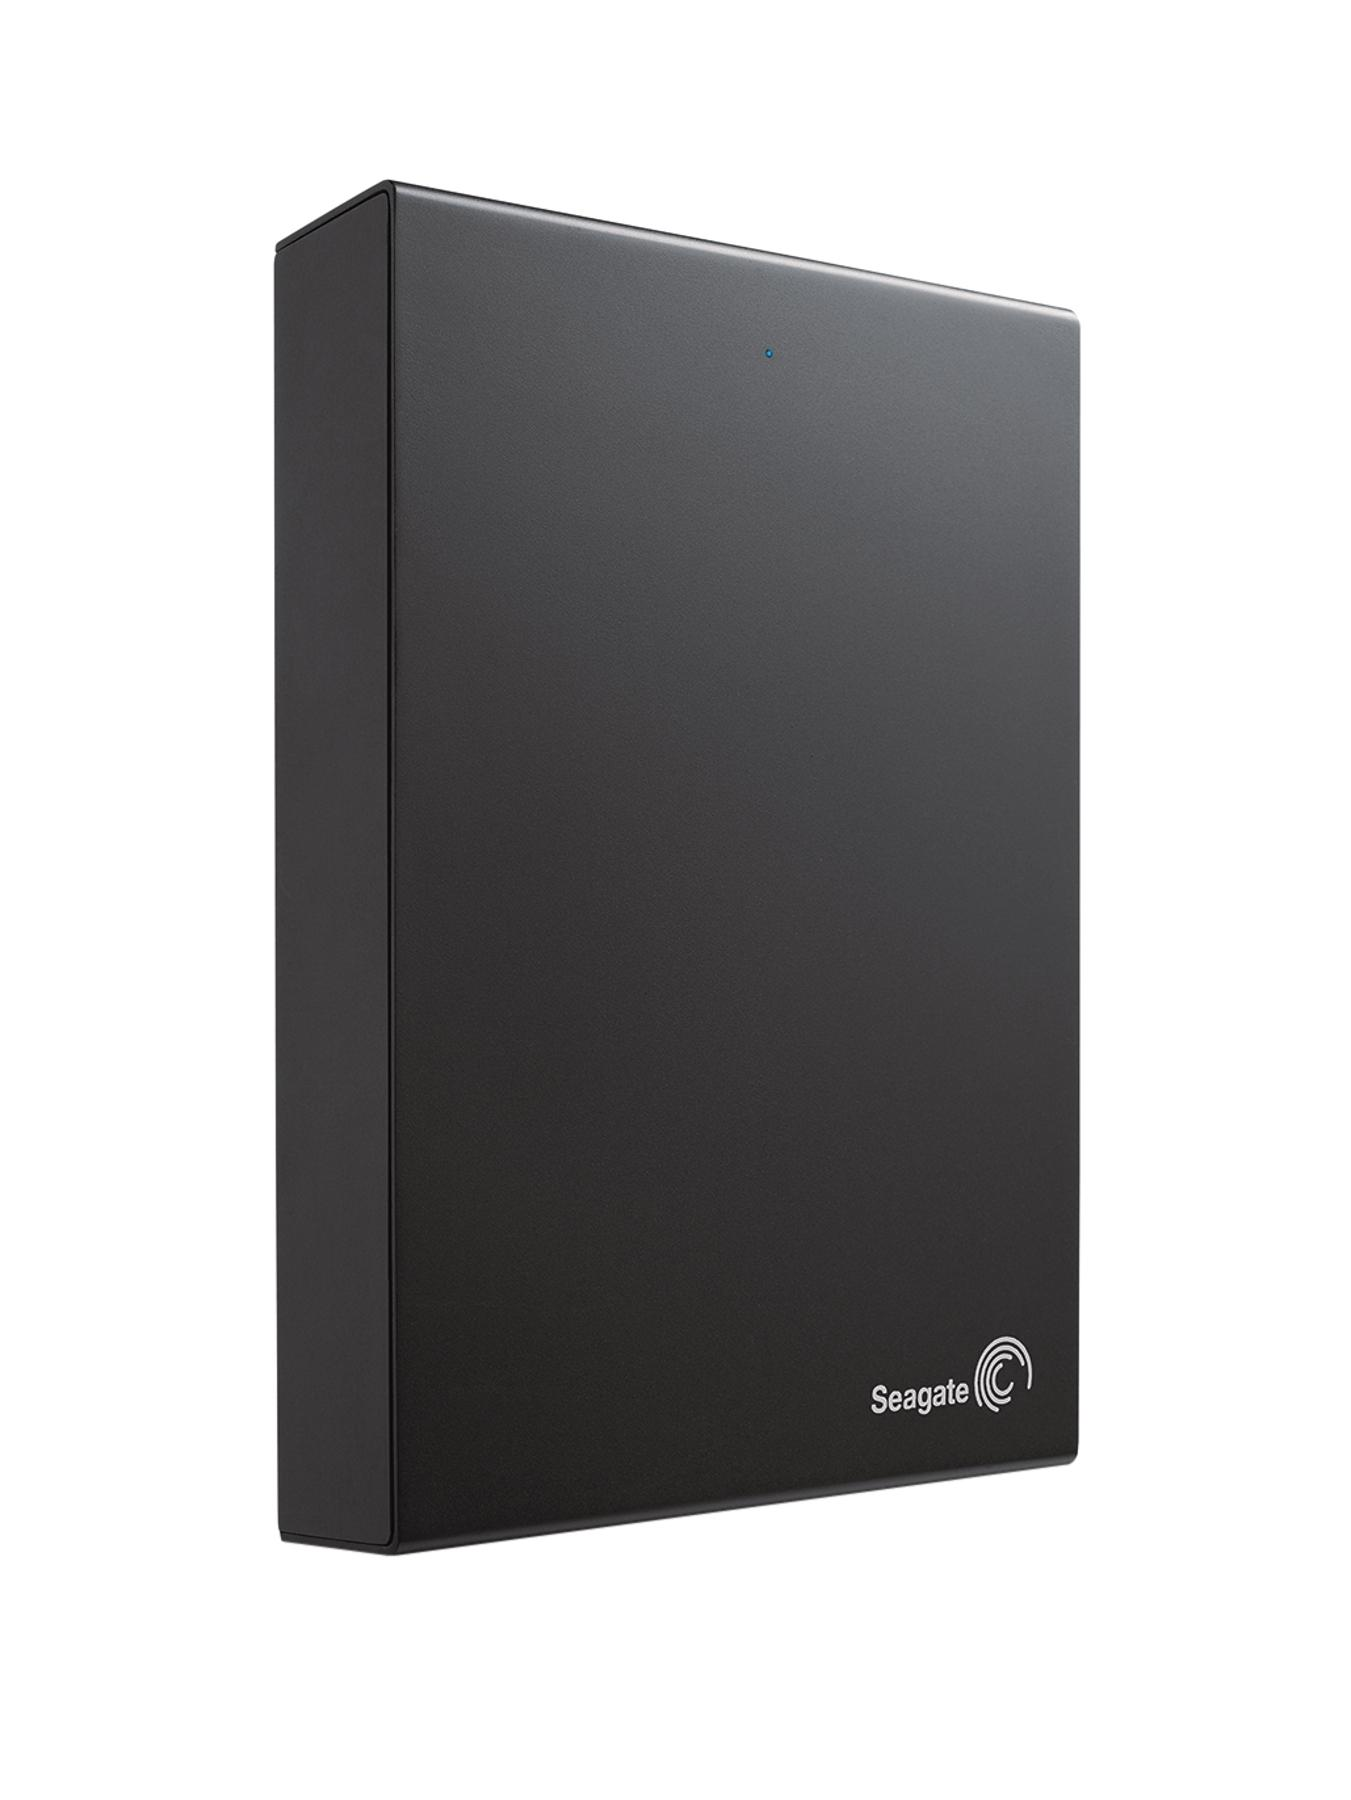 Expansion 3Tb External Desktop Hard Drive - Black